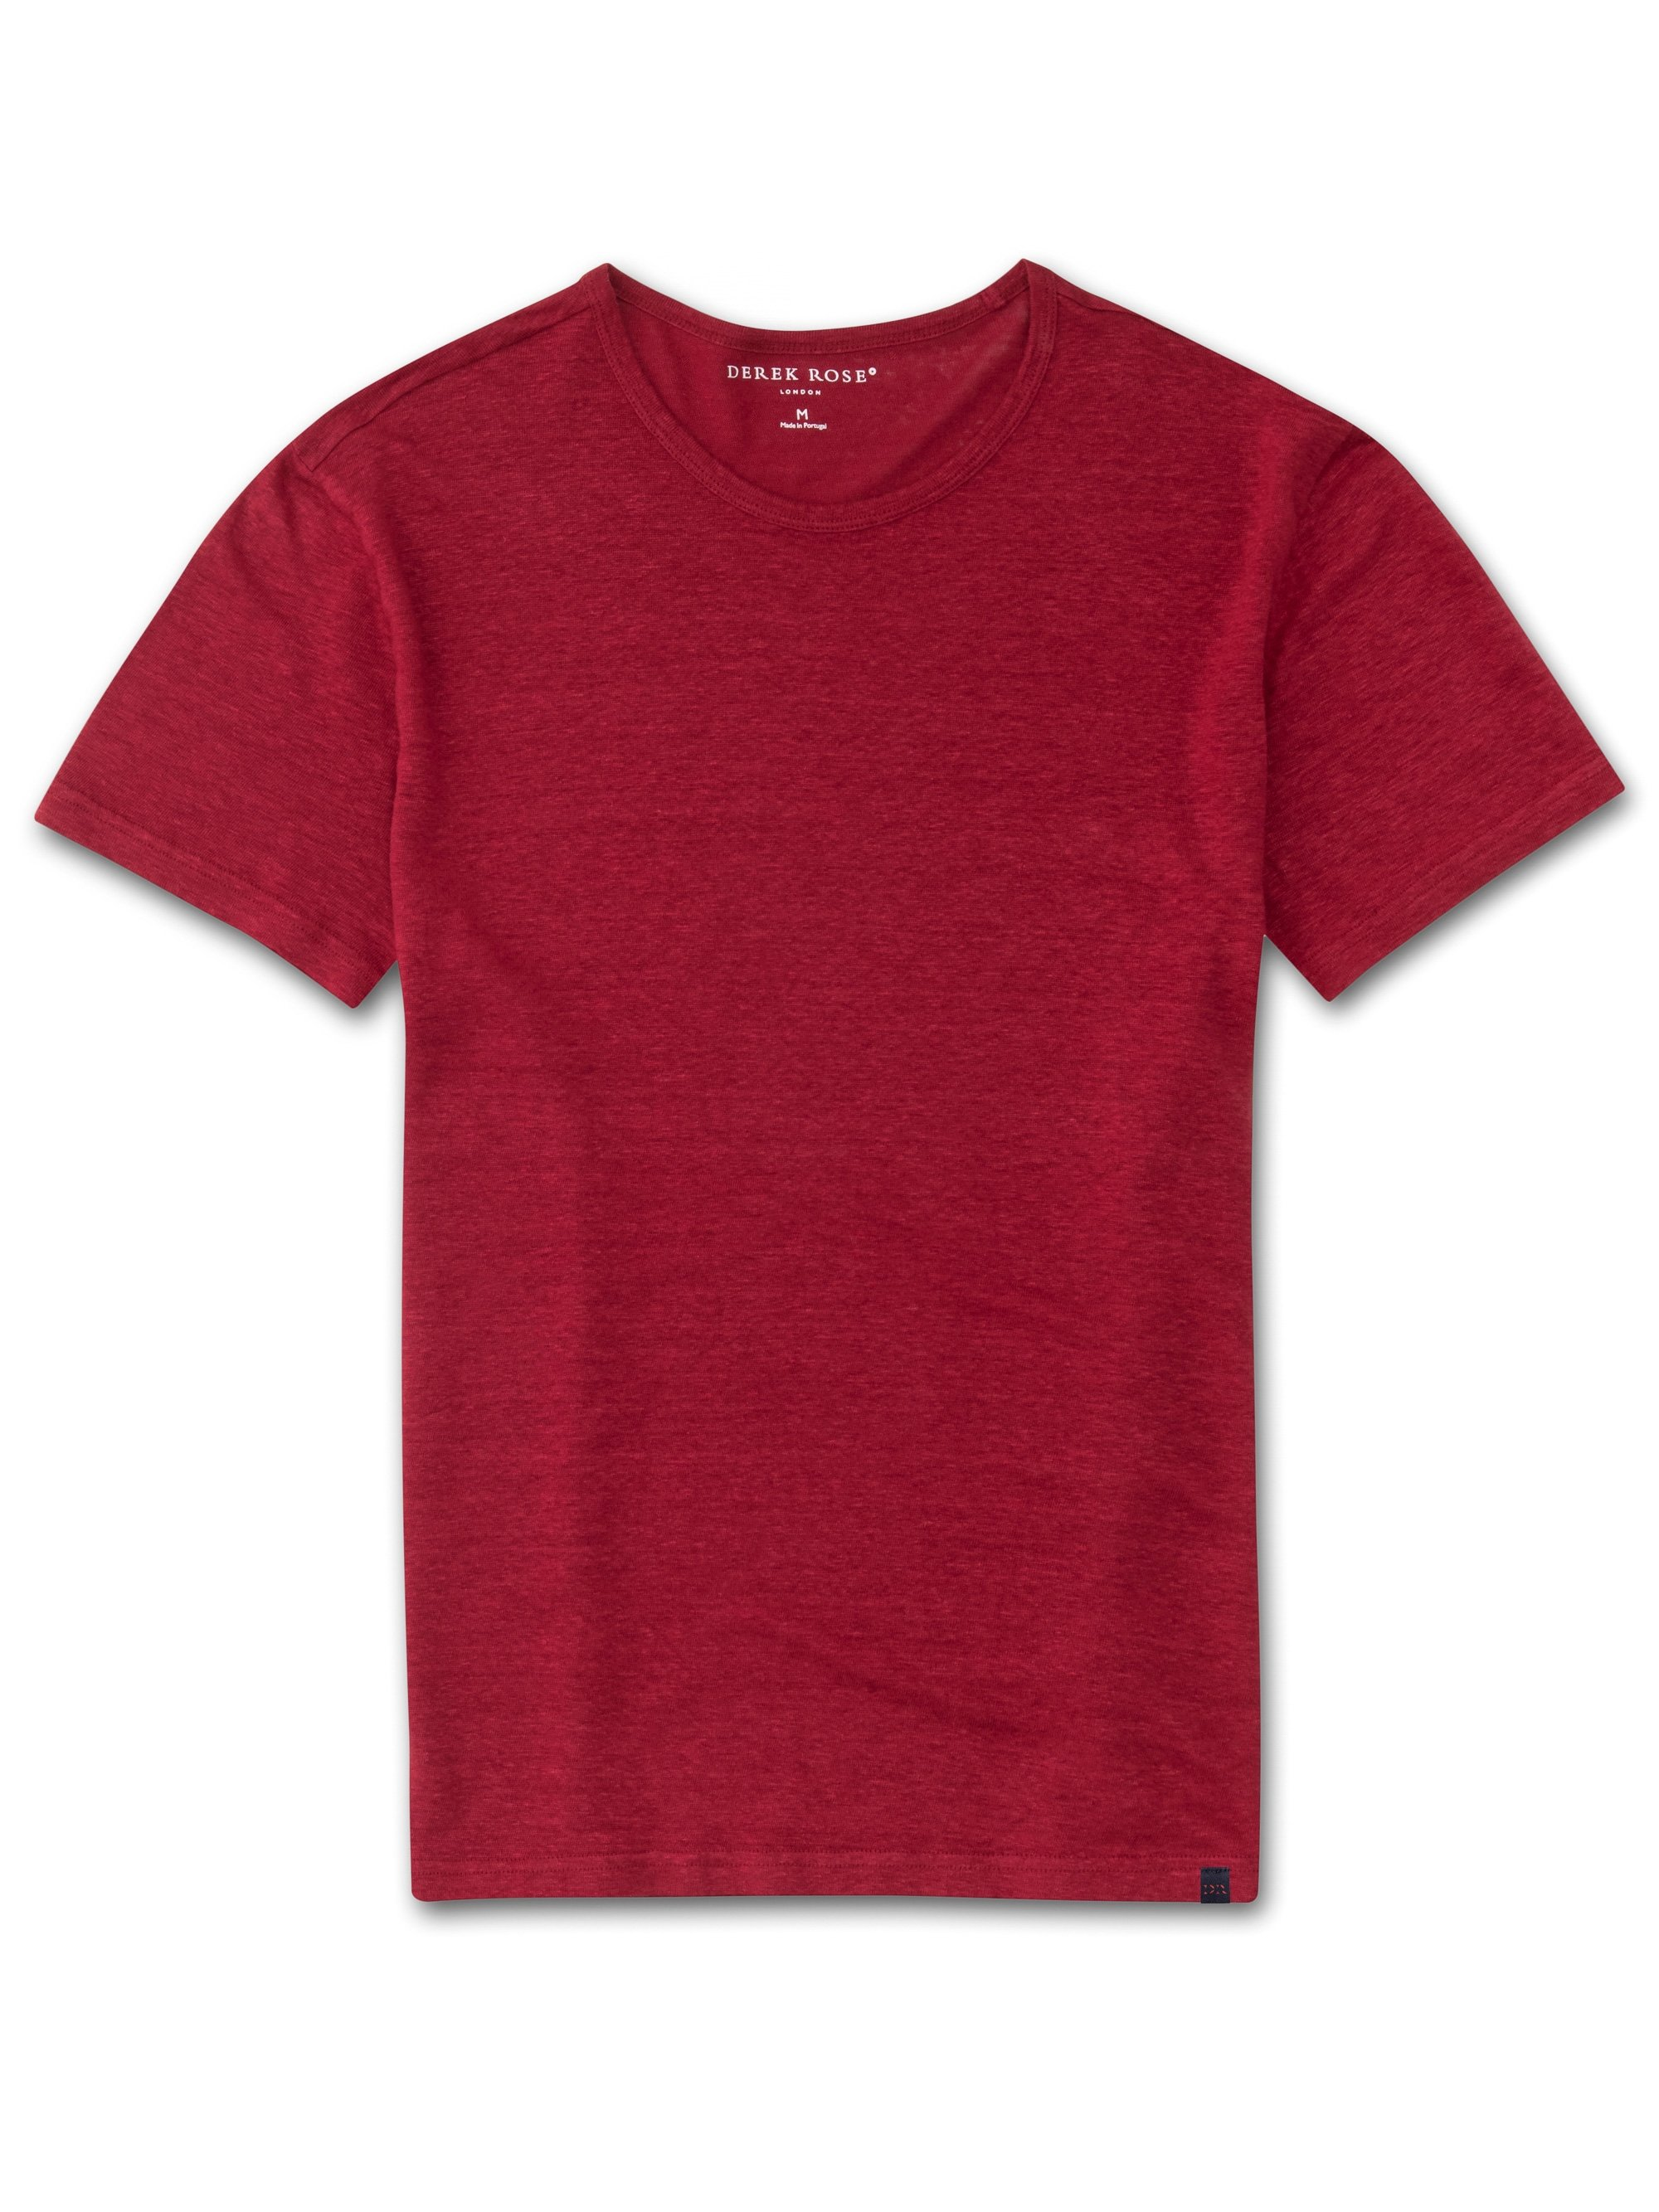 Men's Linen Short Sleeve T-Shirt Jordan Pure Linen Red